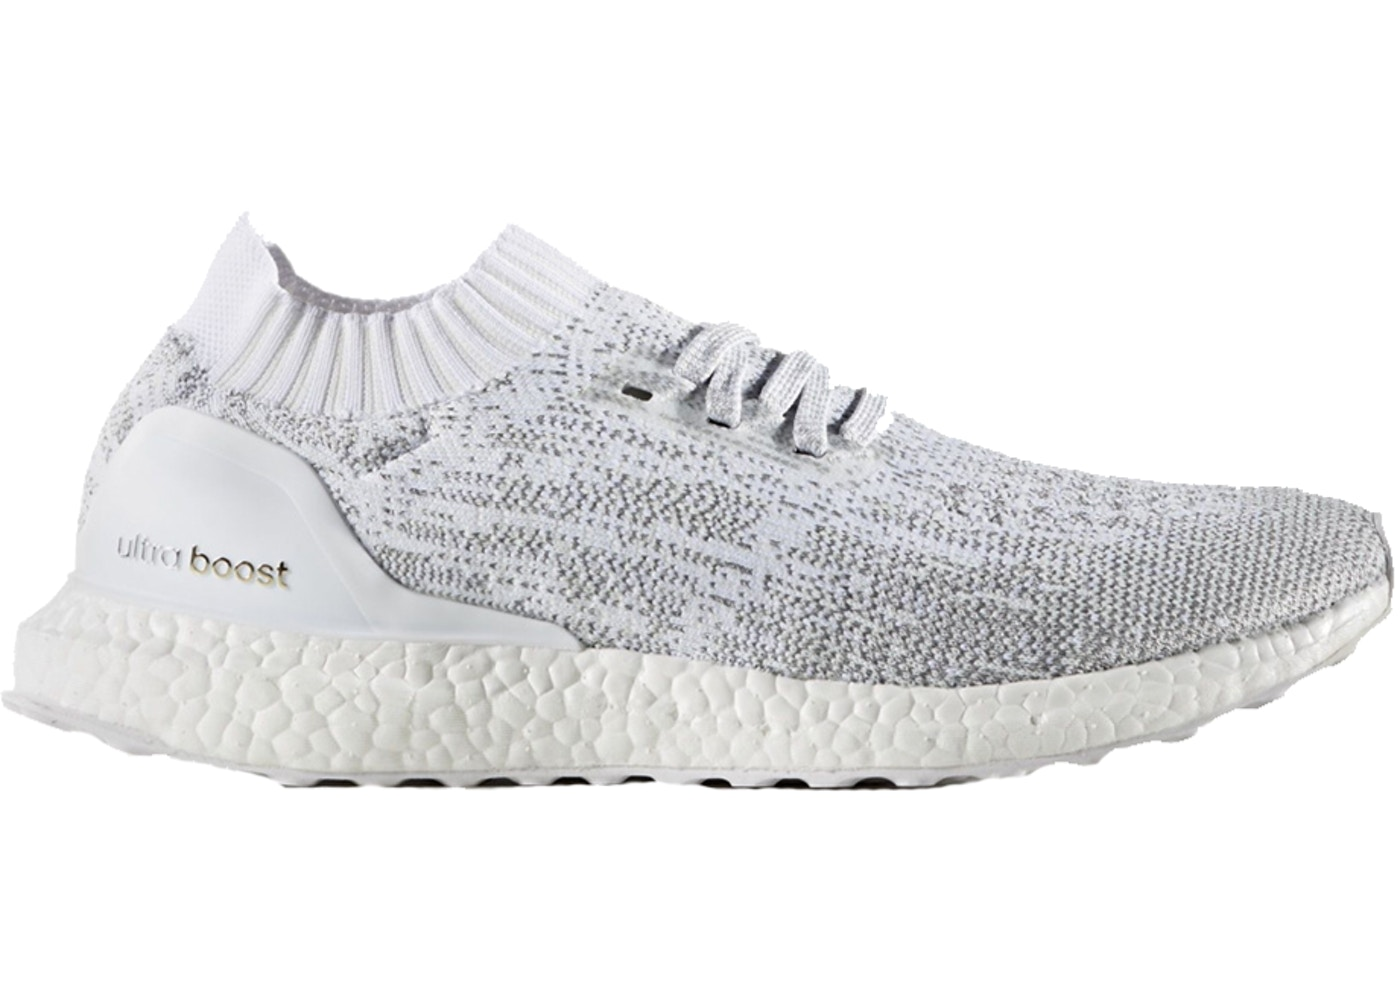 a091e9cc6 adidas Ultra Boost Uncaged White Reflective - BB4075